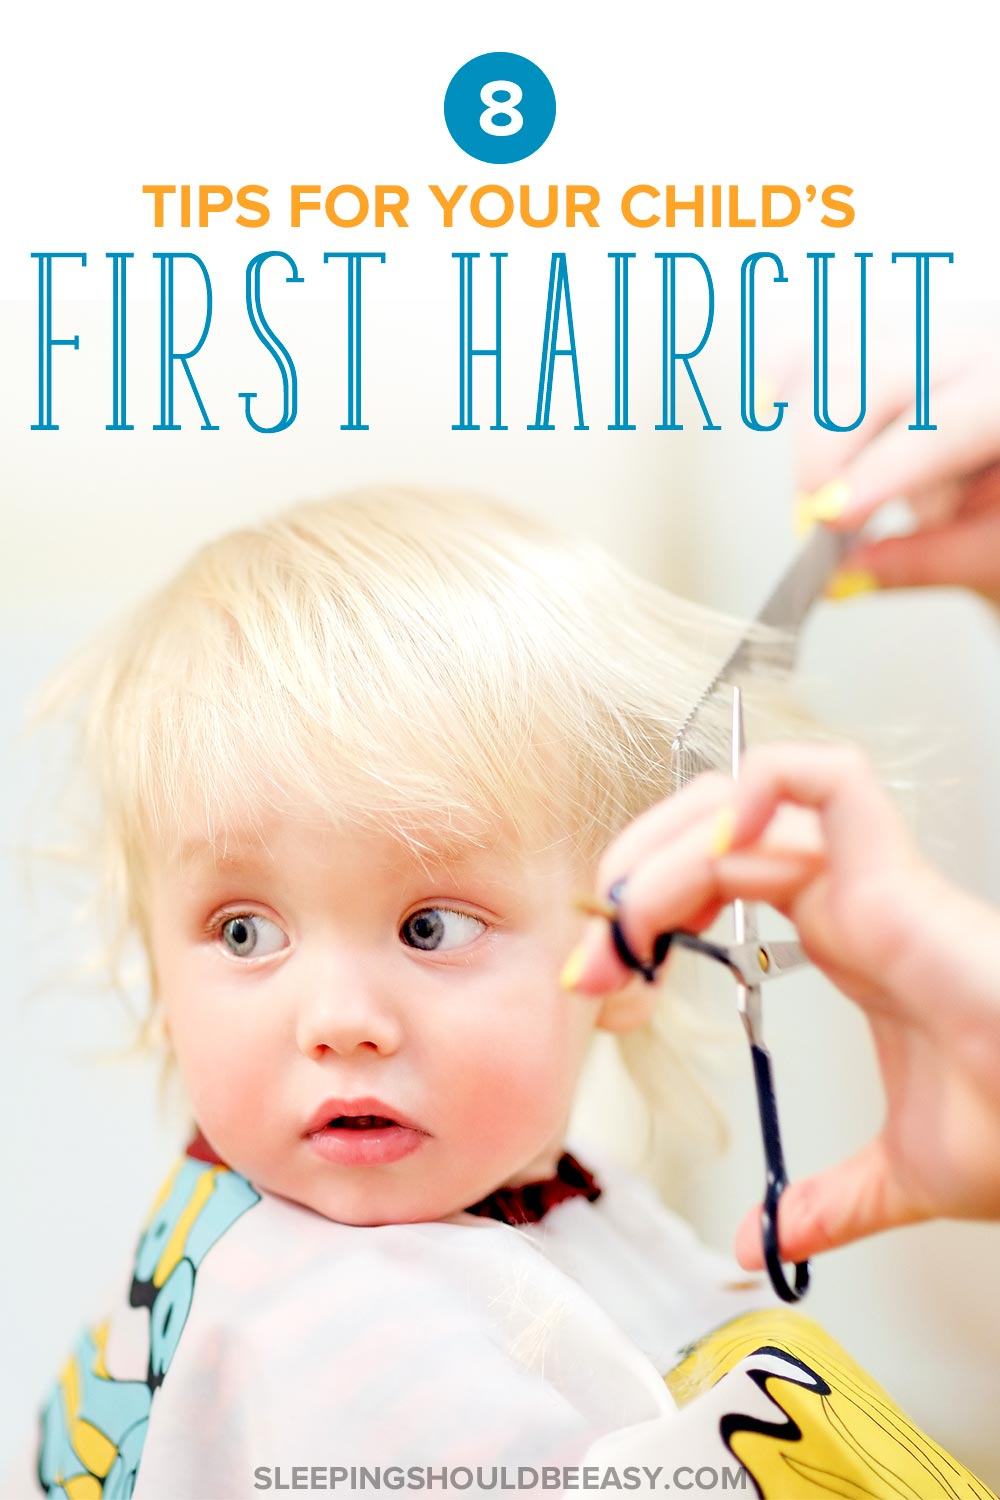 A child getting his first haircut in a salon